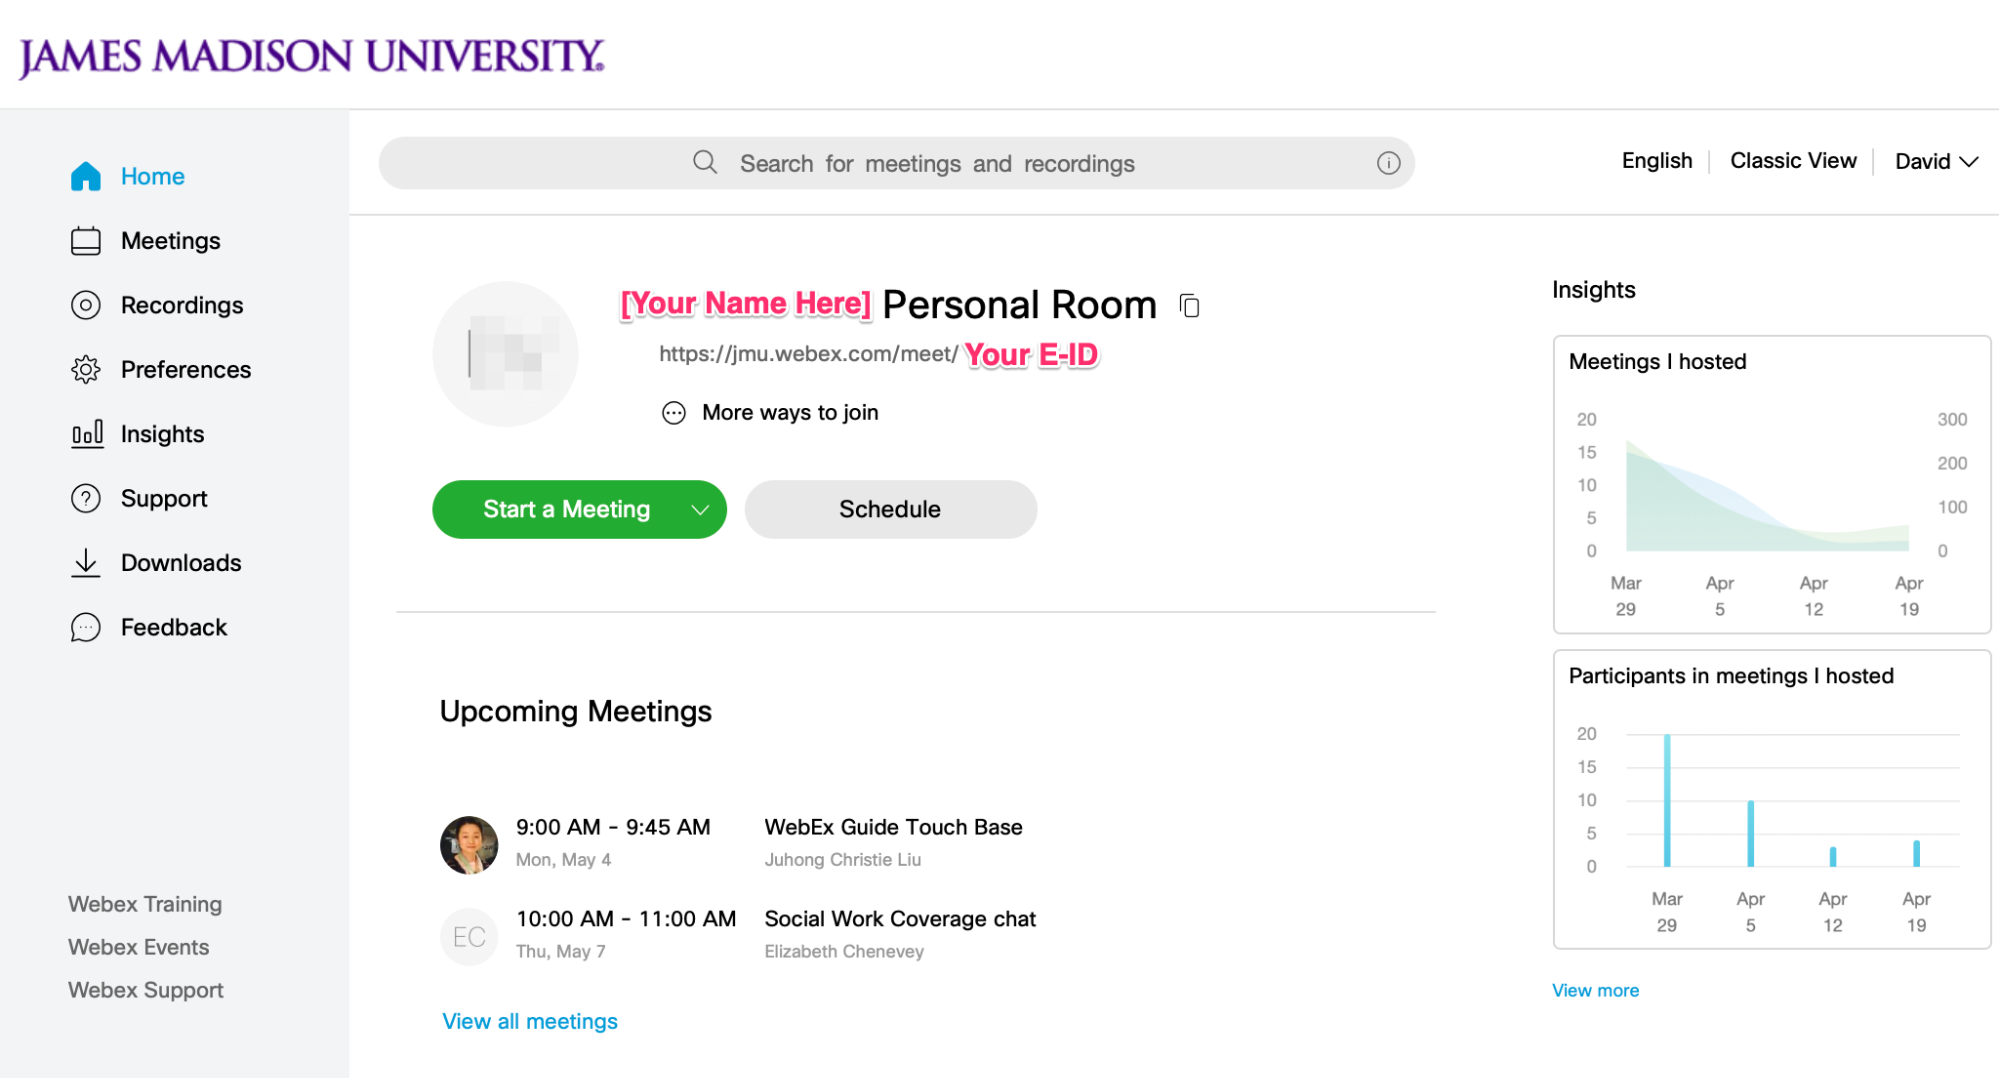 The home page of the JMU Webex website at jmu.webex.com as it appears after anyone with an @jmu.edu account logs in.